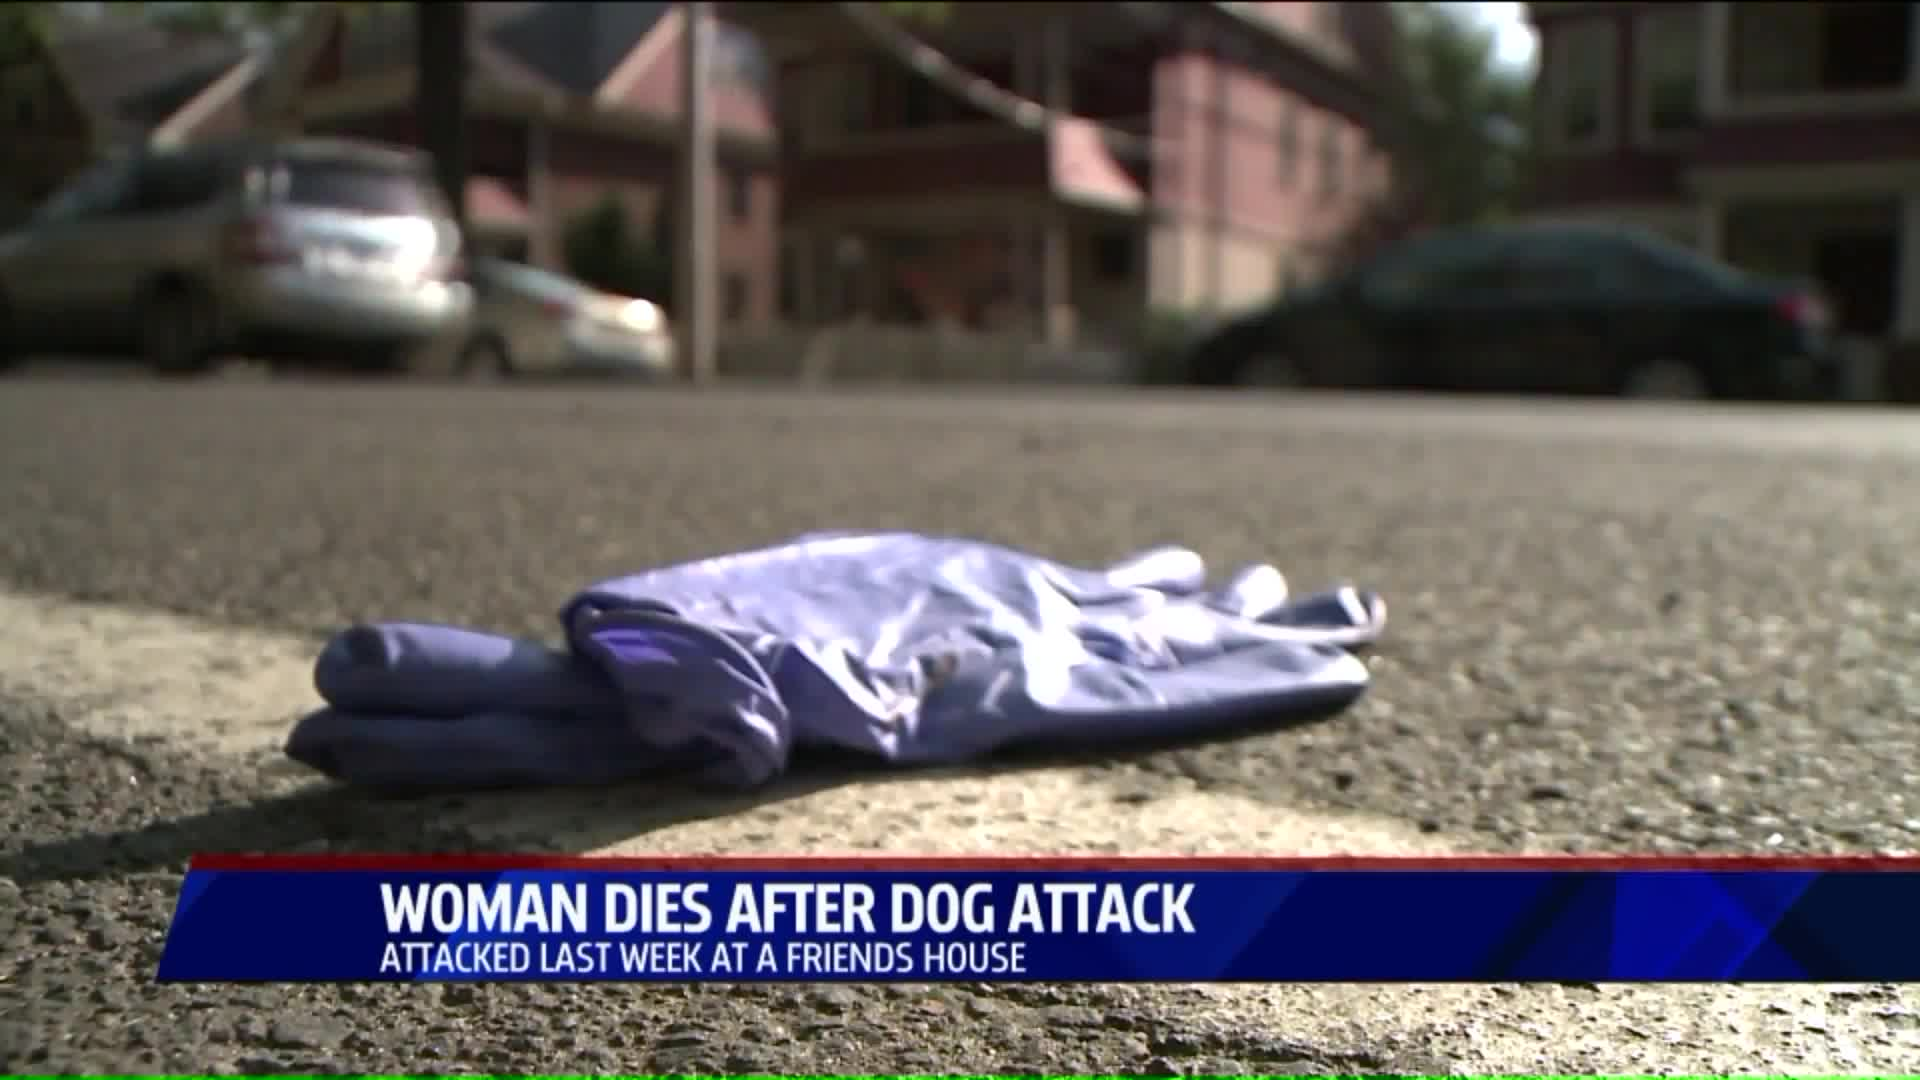 Connecticut Woman Dies After Horrific Dog Attack